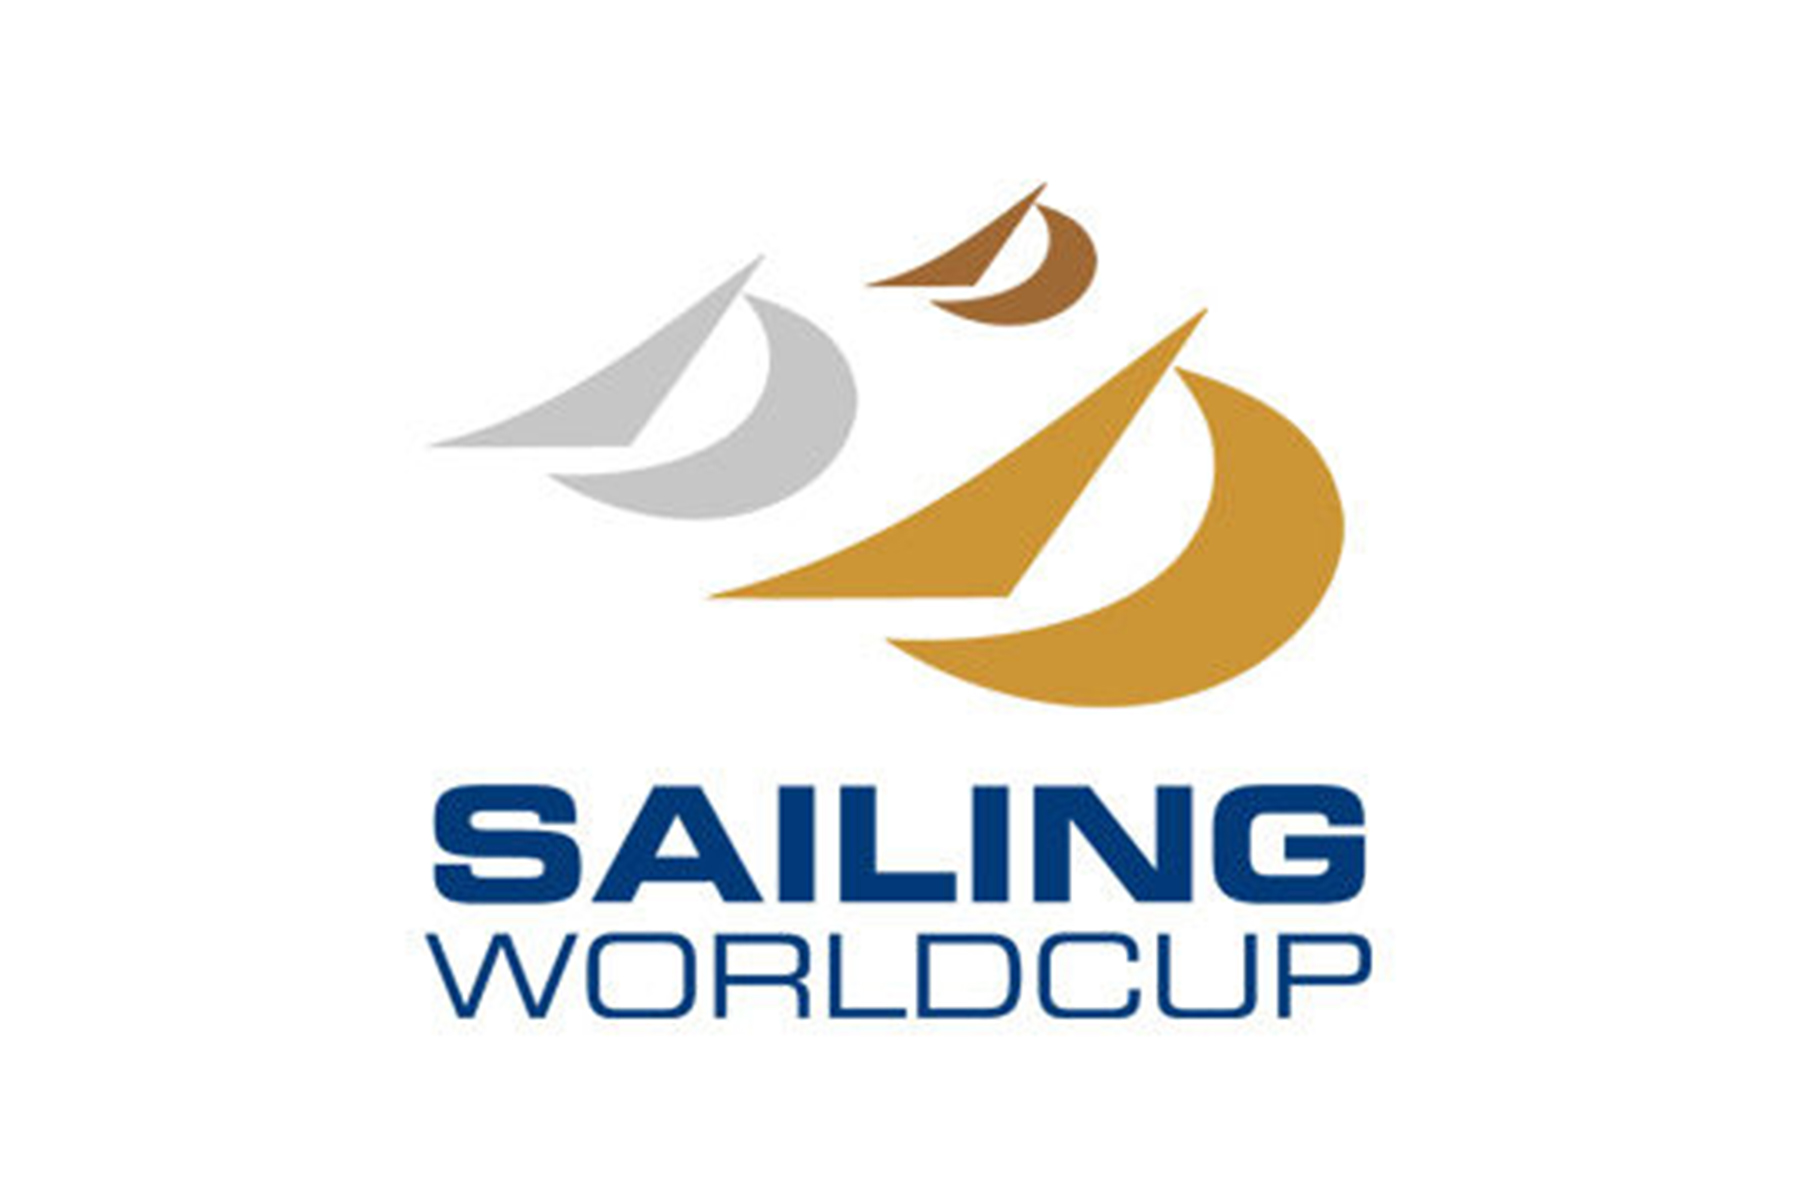 SailingWorldCup.jpg